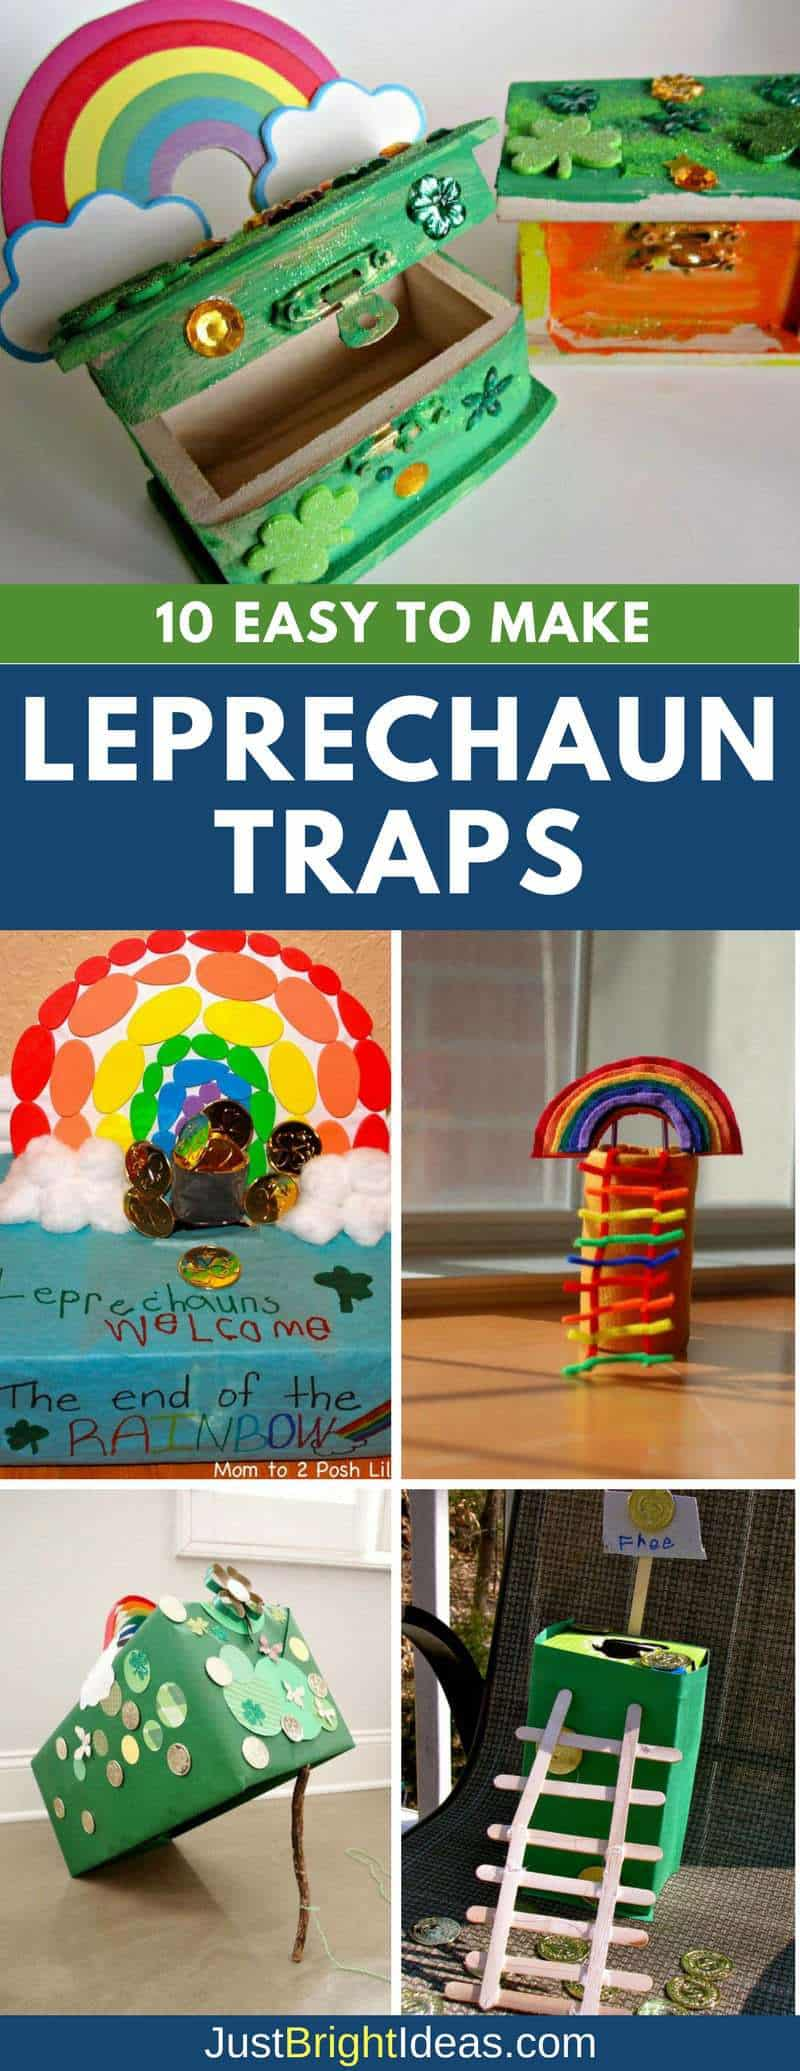 DIY Leprechaun Traps for Kids Pinterest